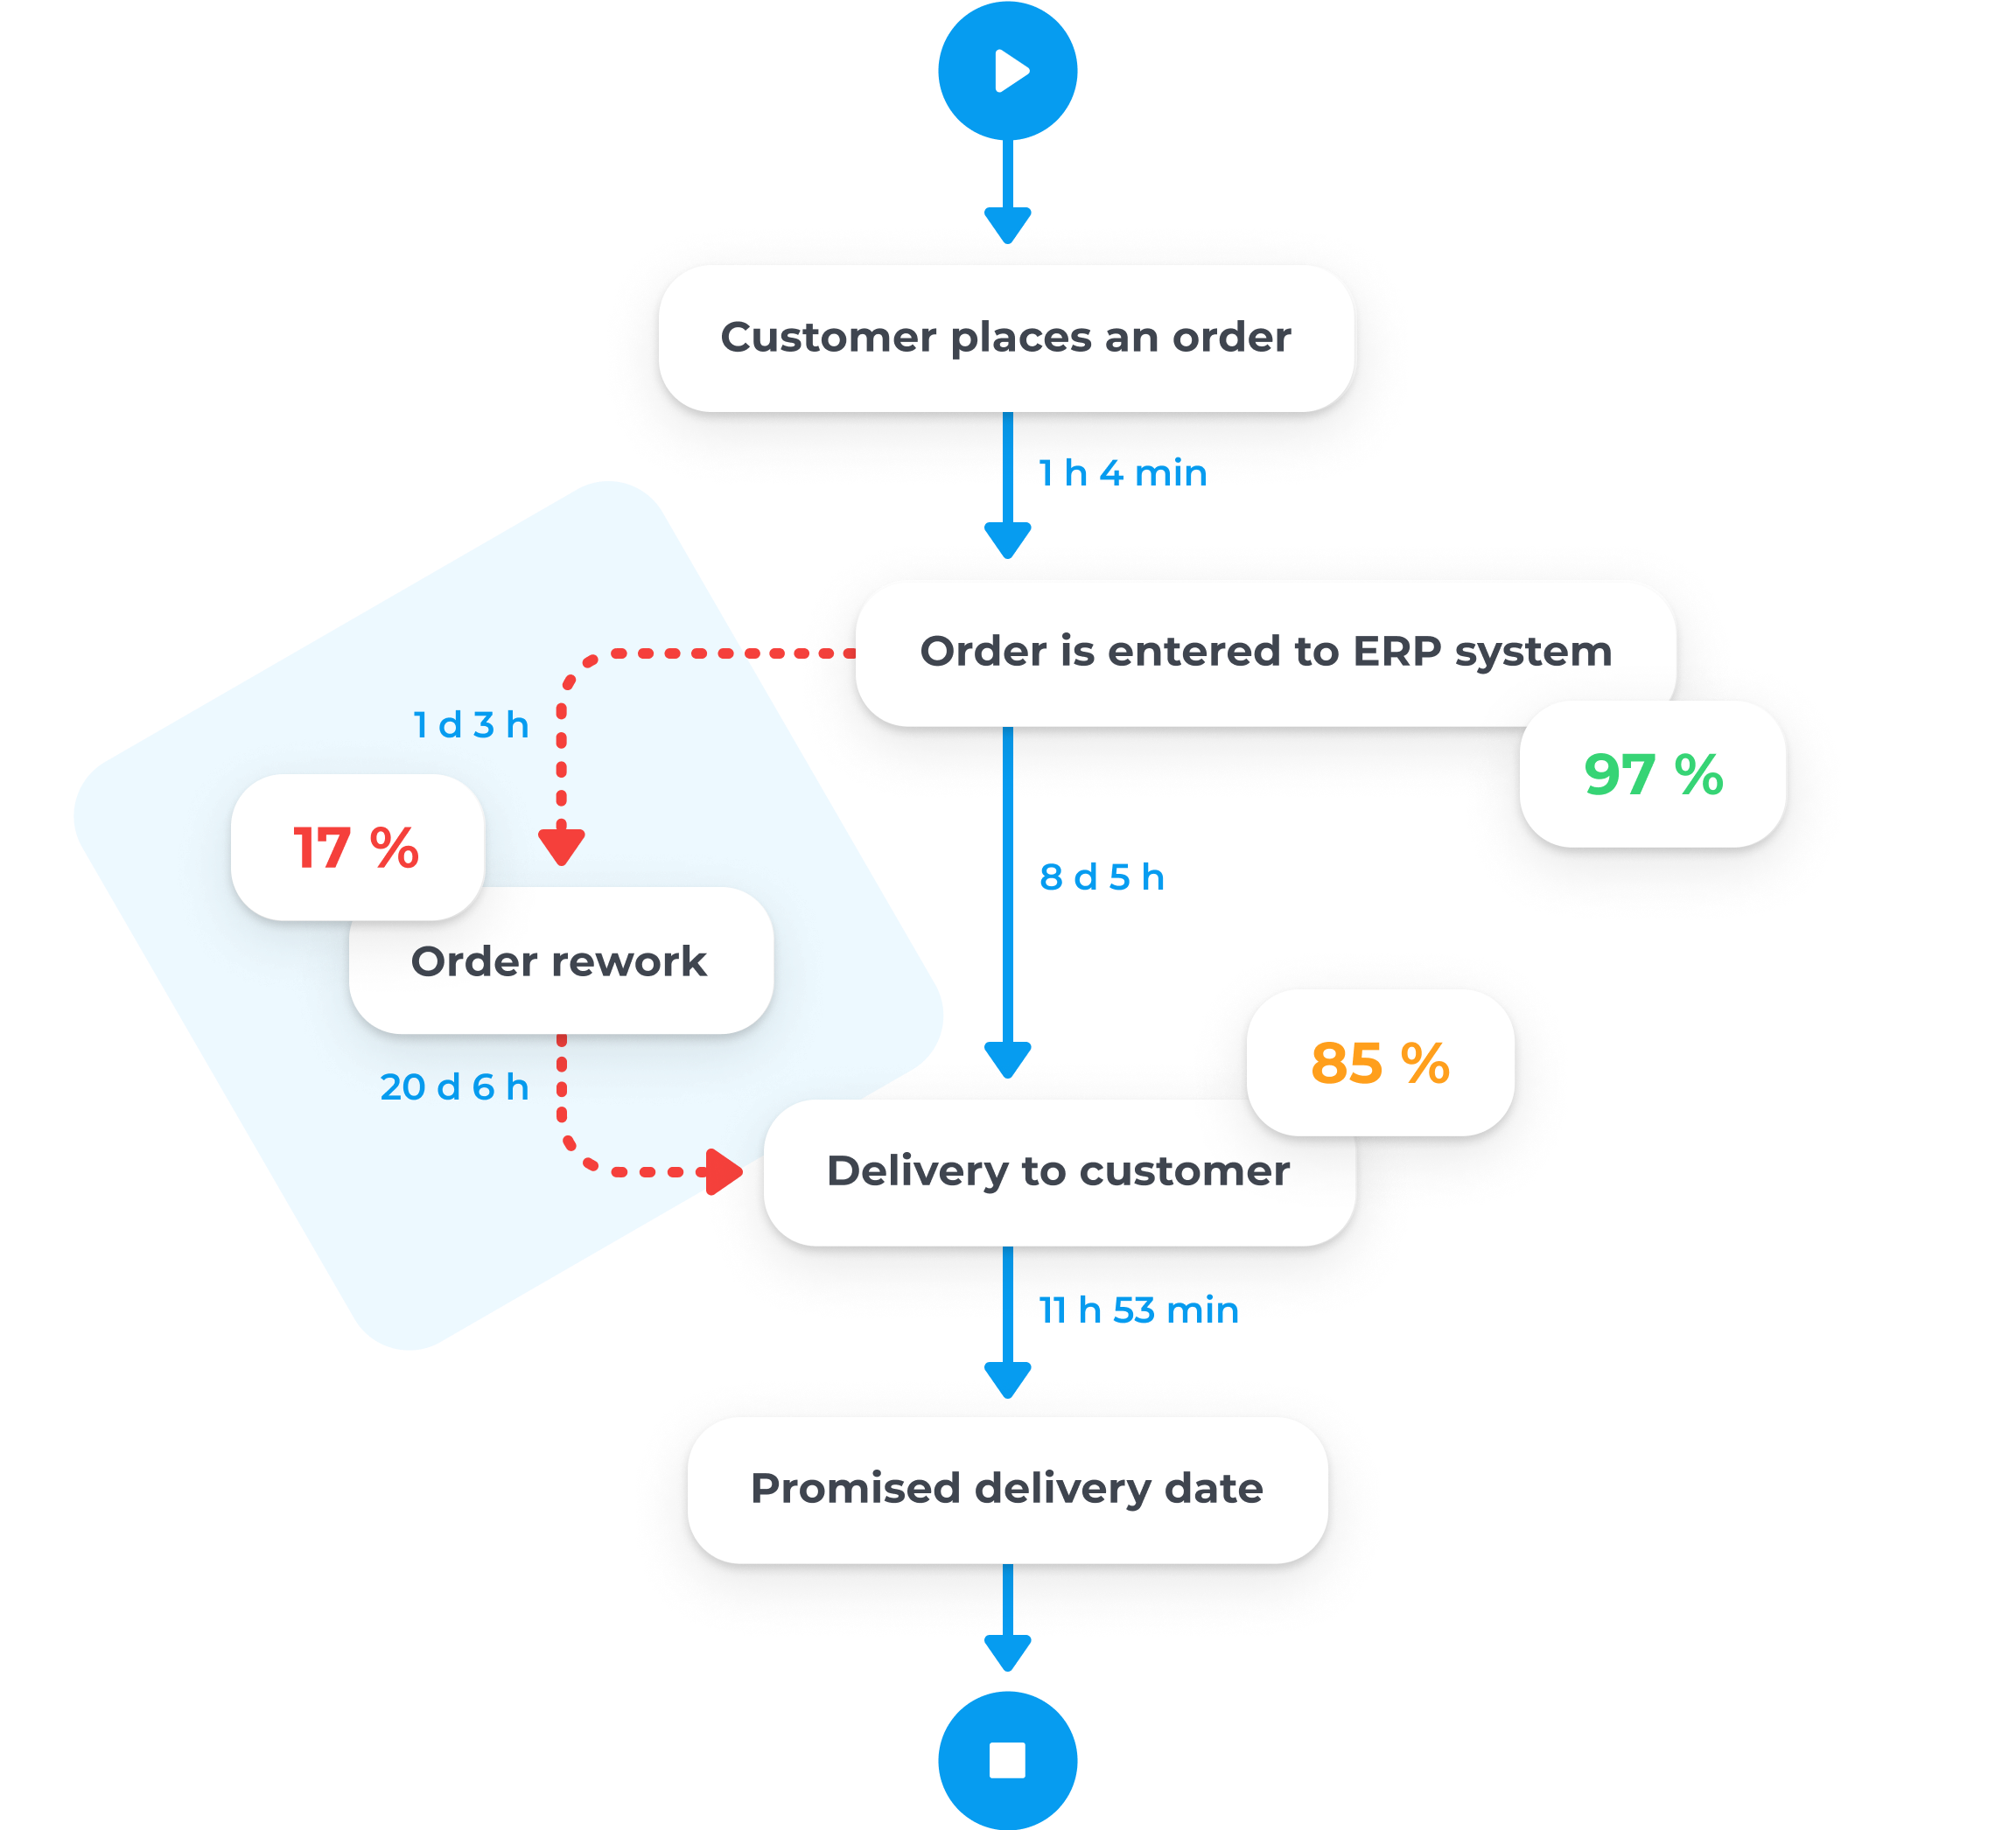 qpr-process-mining-visualizes-data-and-process-flows